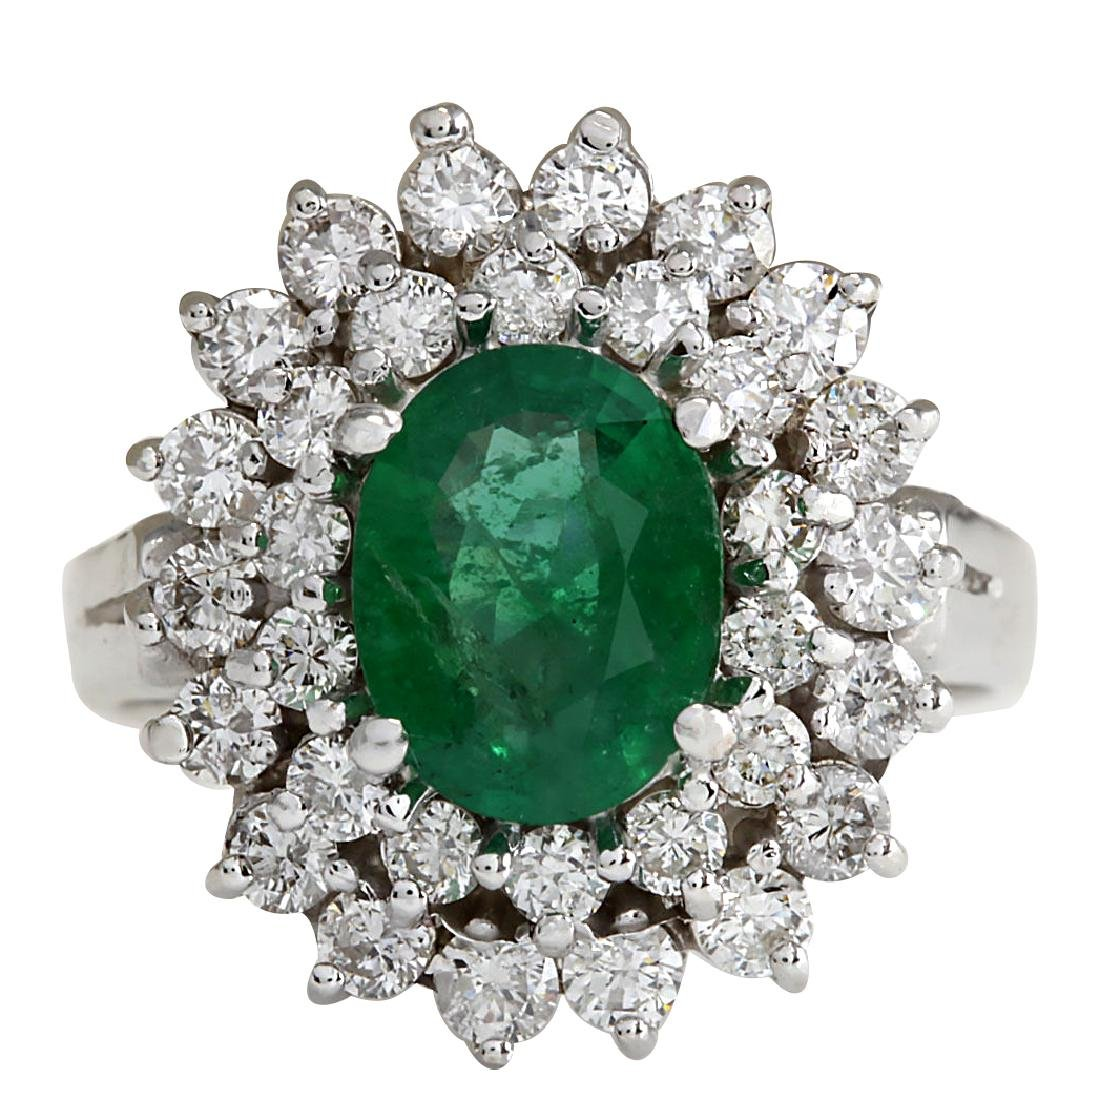 2.81CTW Natural Emerald Diamond Ring 18K Solid White